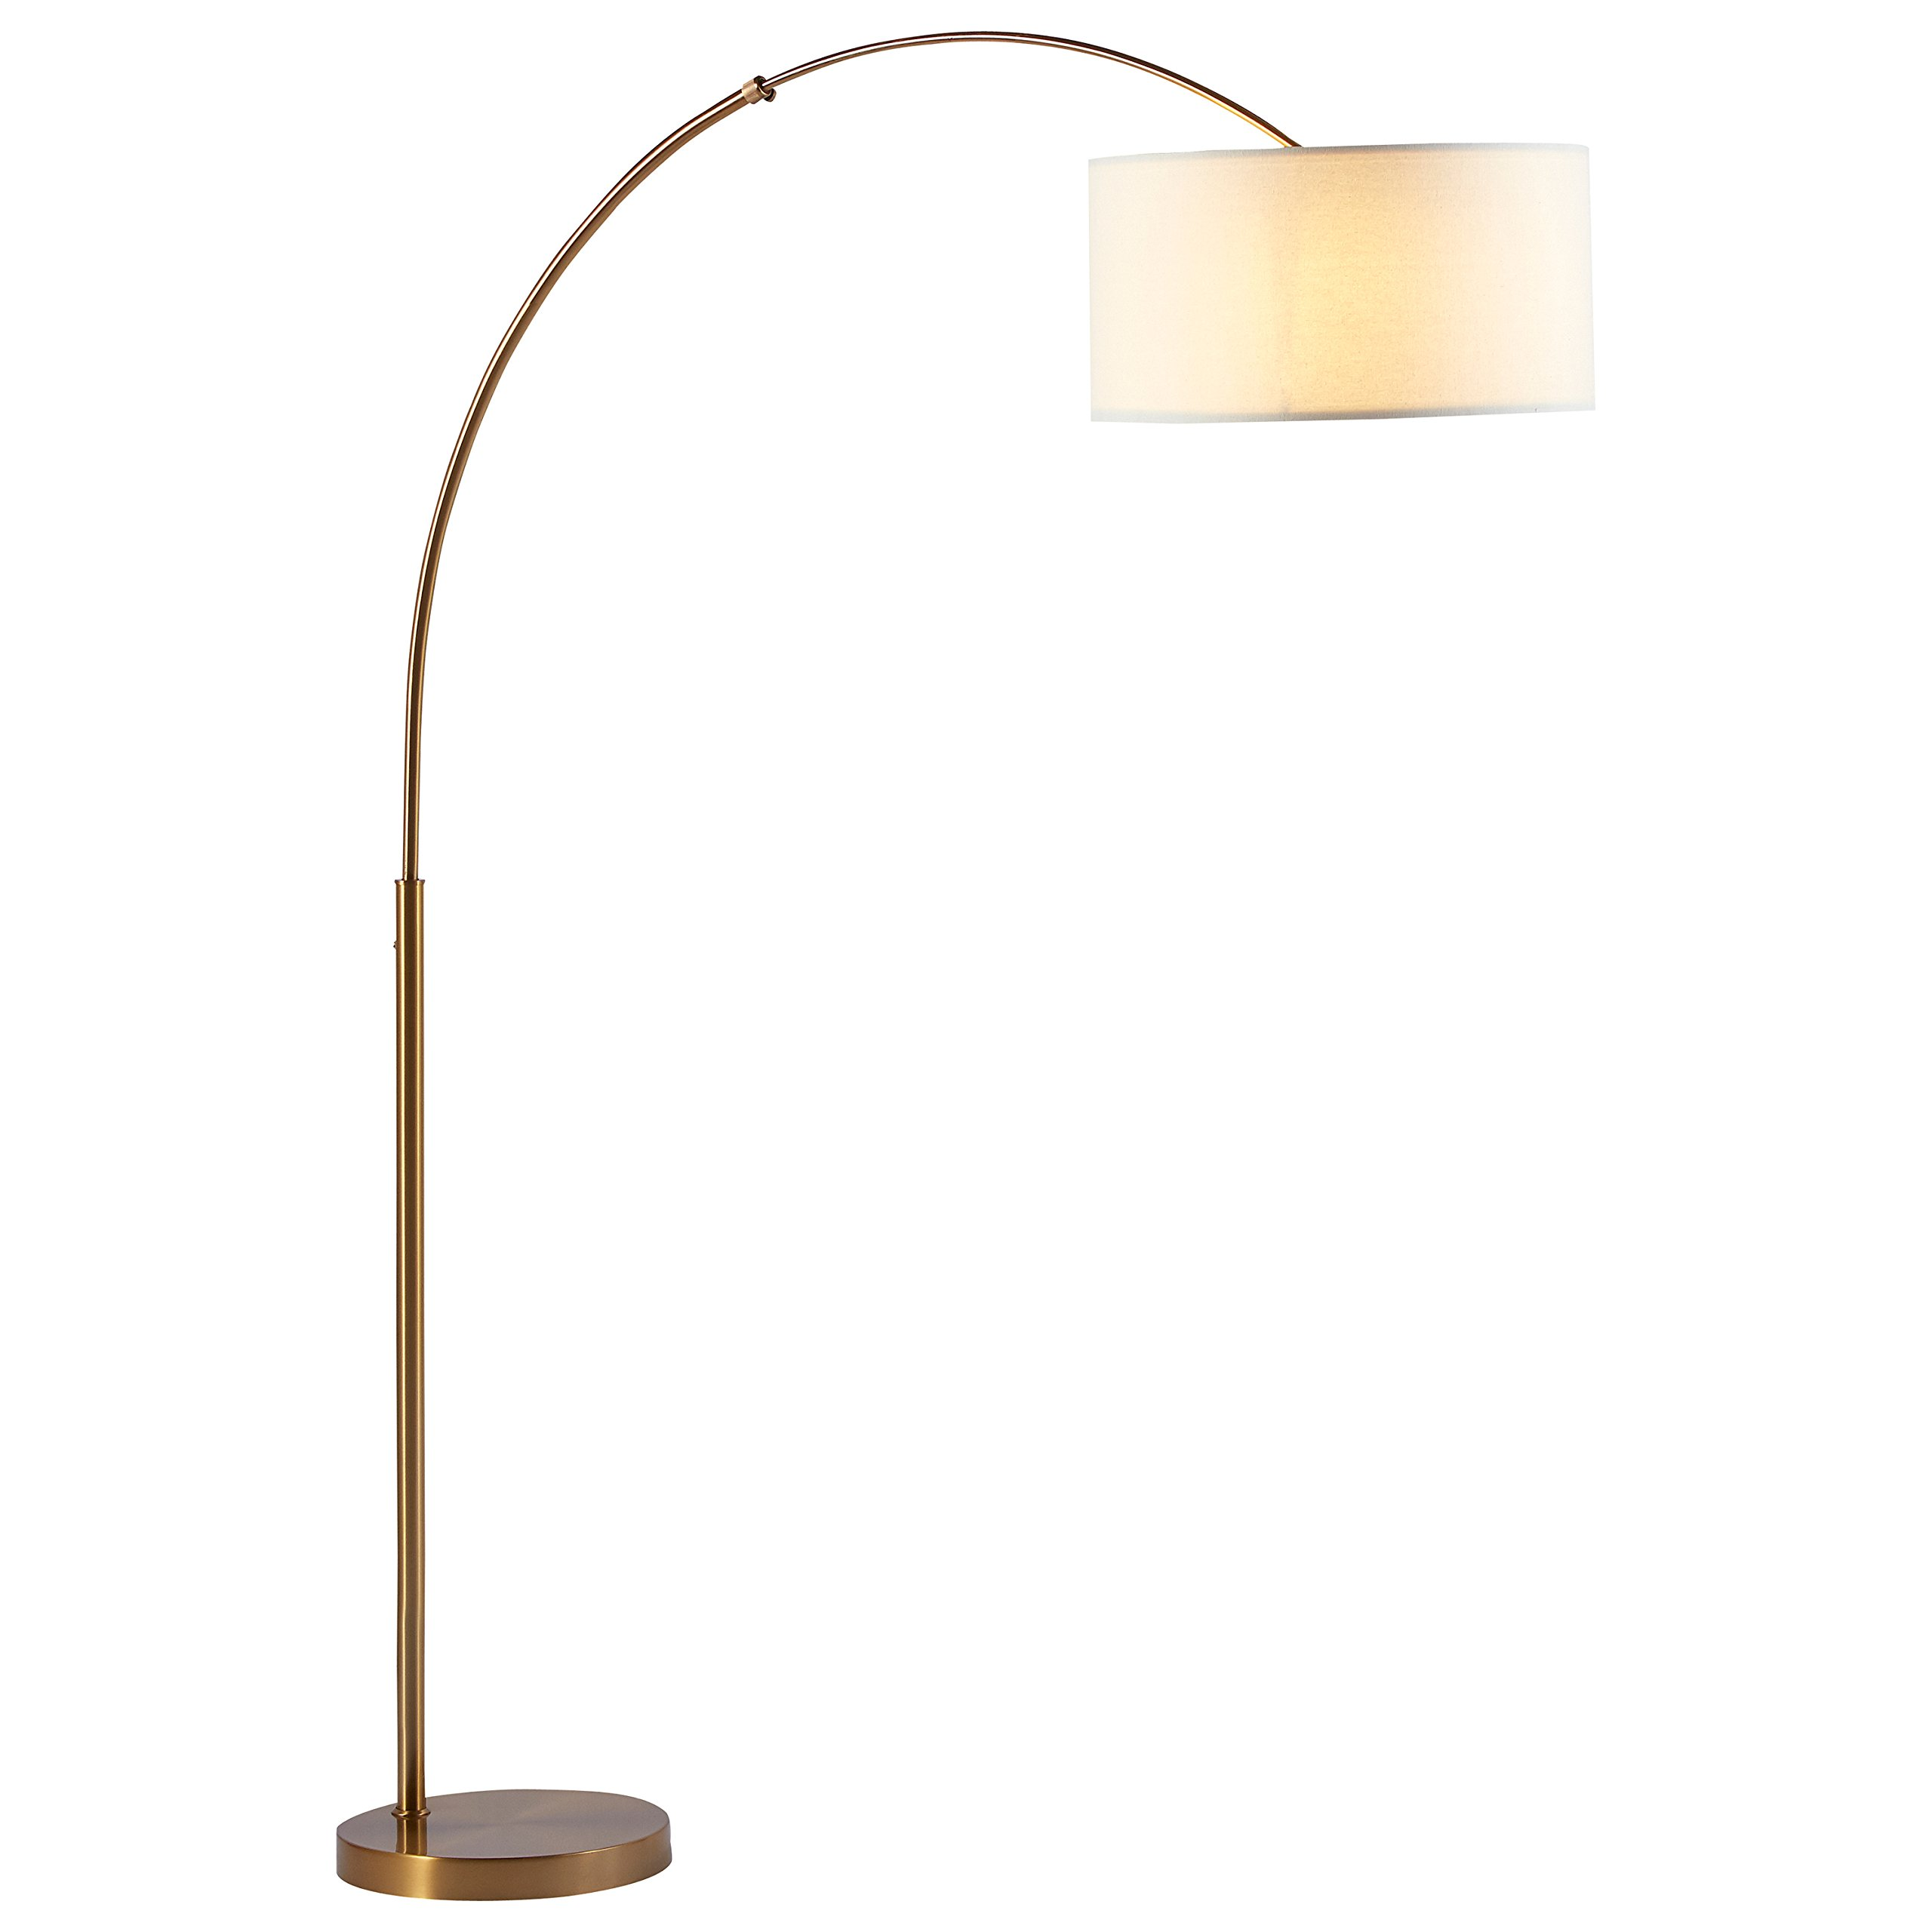 Rivet Brass Arc Floor Lamp, 76''H, With Bulb, Brass with Linen Shade by Rivet